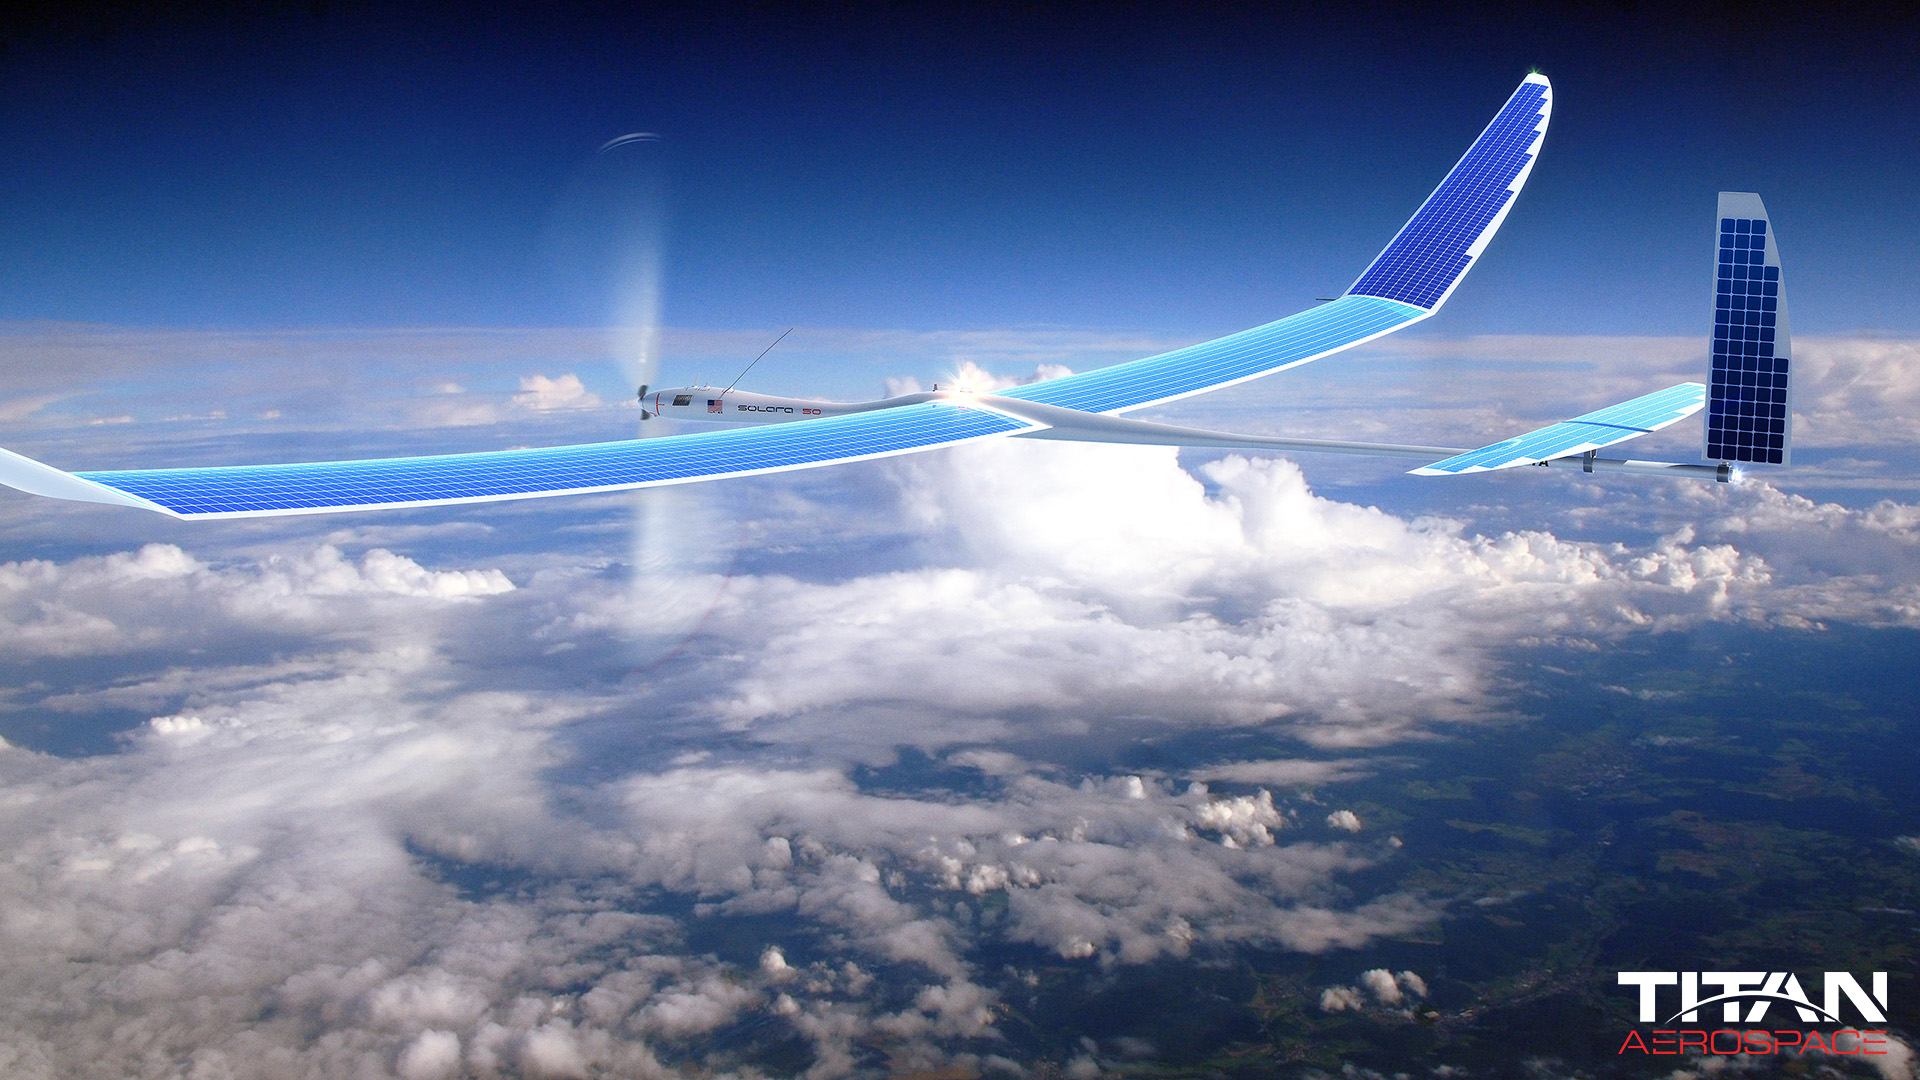 GROUNDED. The drones that were supposed to deliver internet from the sky, shown here as an artist's rendering, have been cancelled. Photo from Titan Aerospace